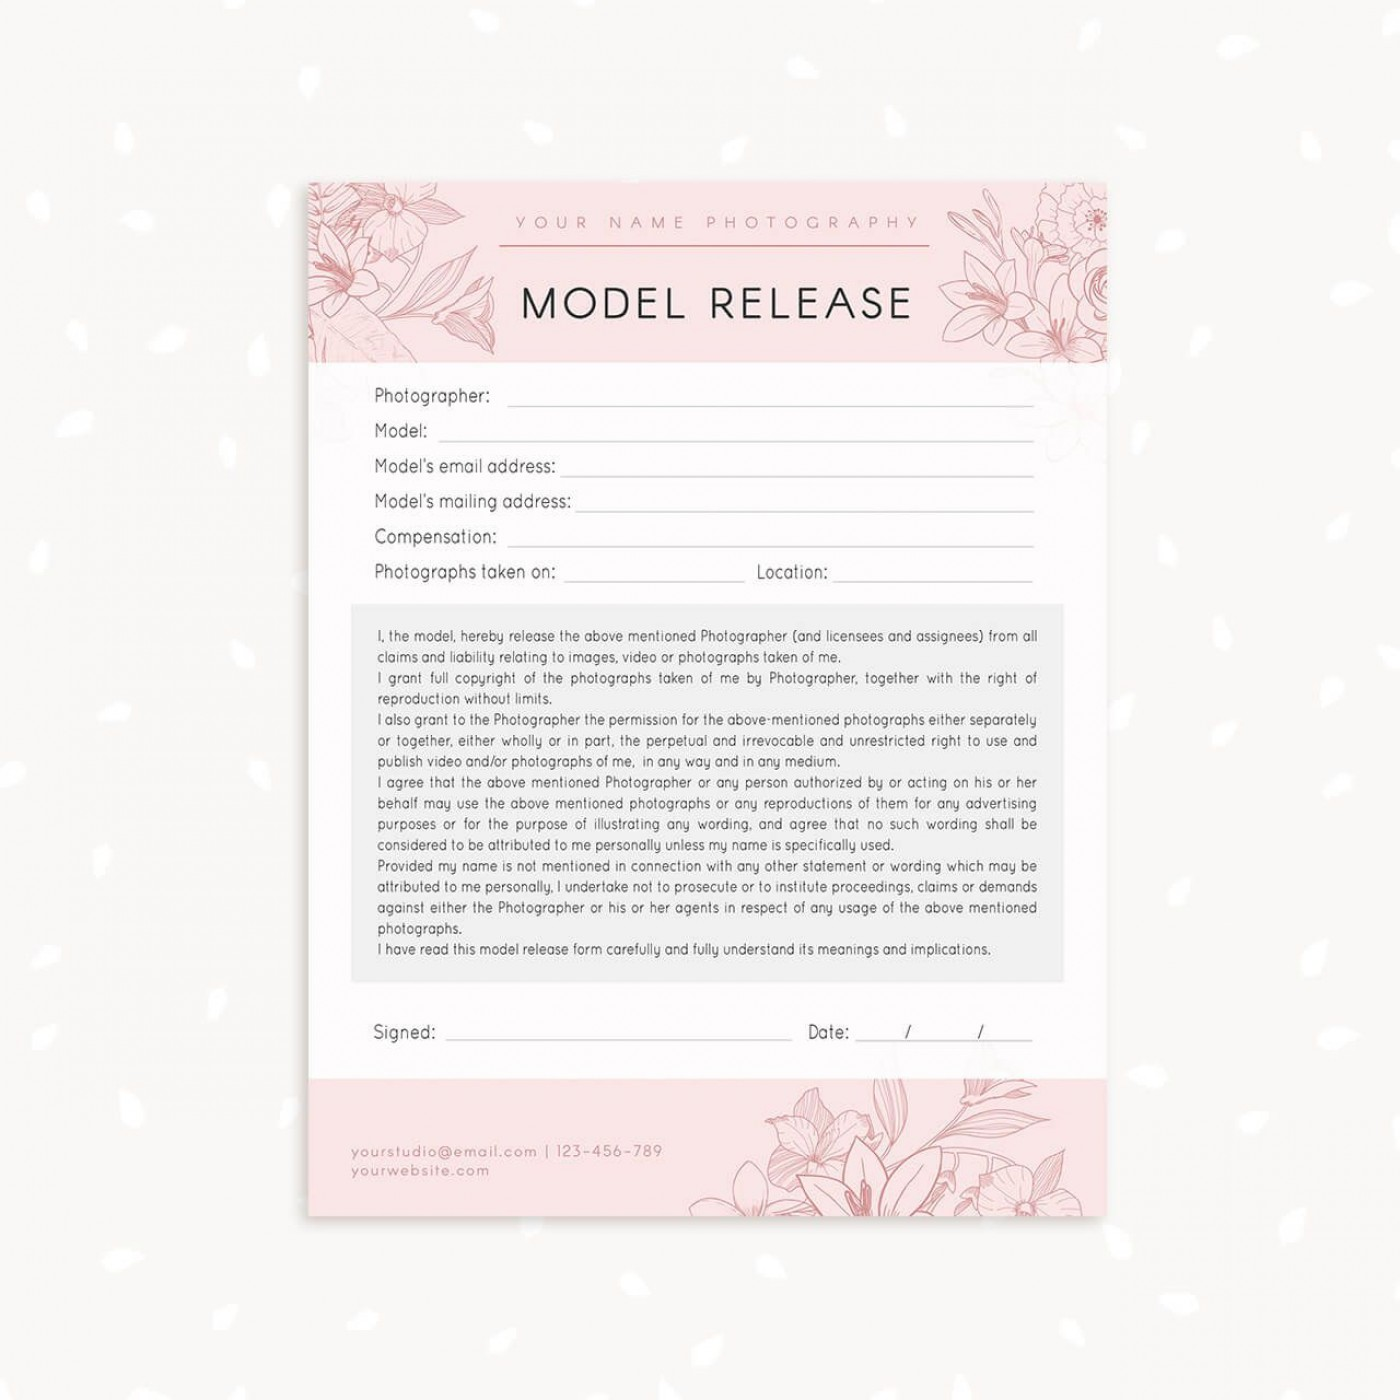 006 Marvelou Model Release Form Template Highest Clarity  Photographer Gdpr Simple1400